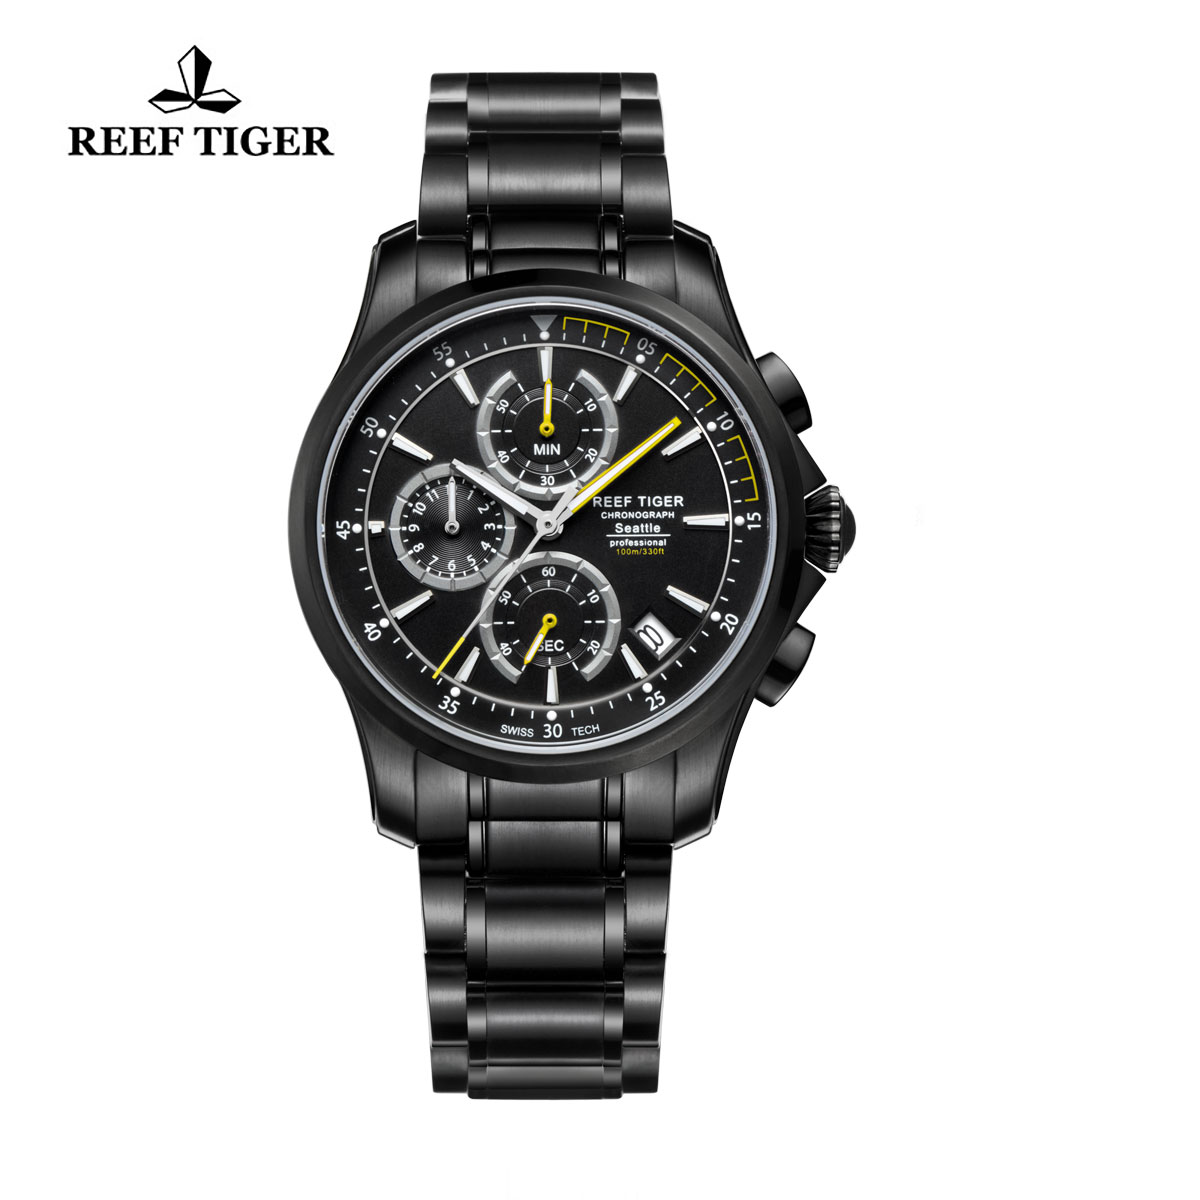 Reef Tiger Sports Watch Black DLC Black Dial DLC Bracelet Chronograph Watch RGA1663-BBBG